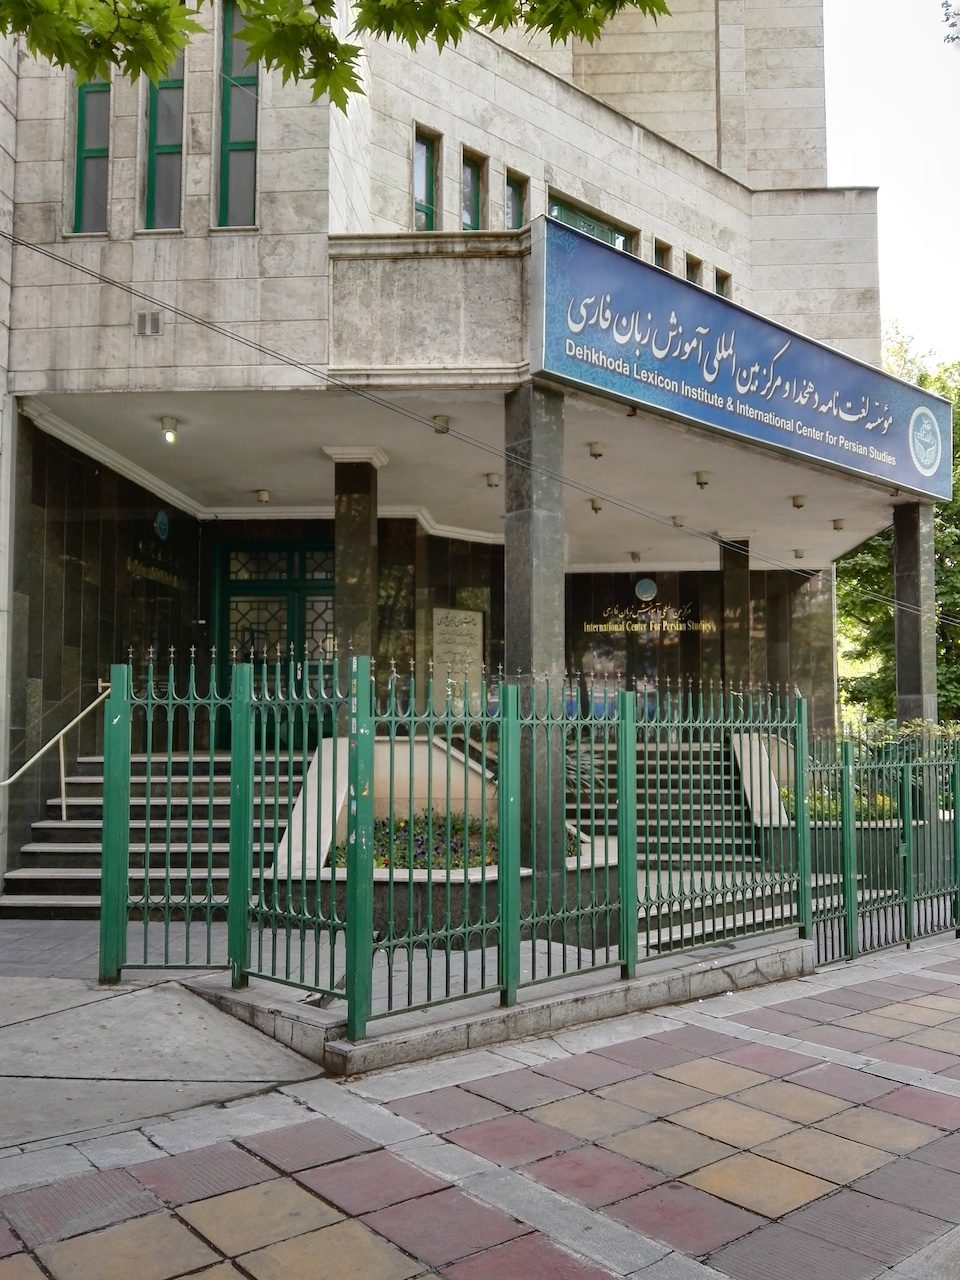 Dehkhoda building entrance